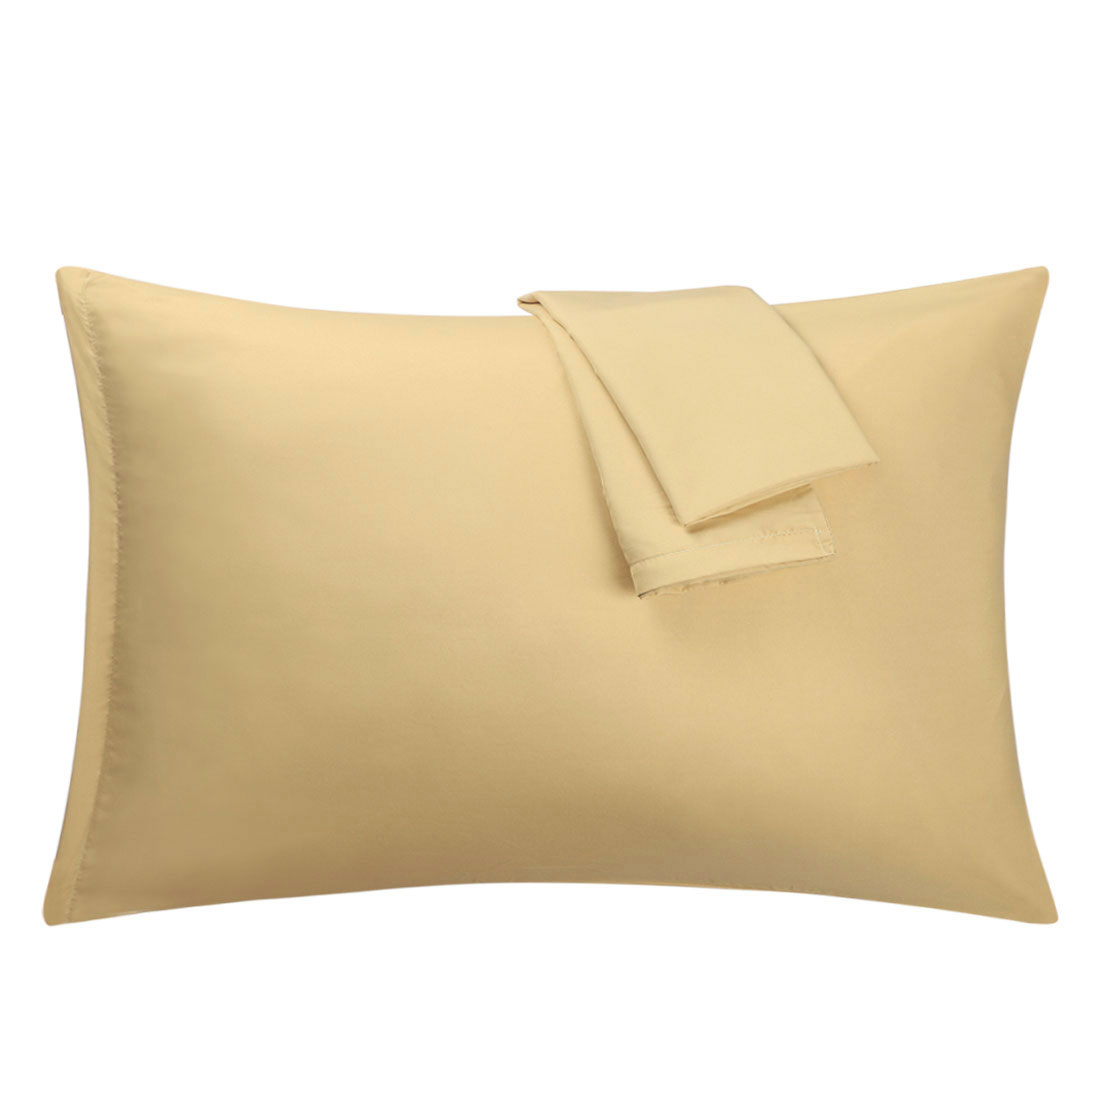 Gold Pillowcases Soft Microfiber Pillow Case Cover with Zipper King, 2 Pack